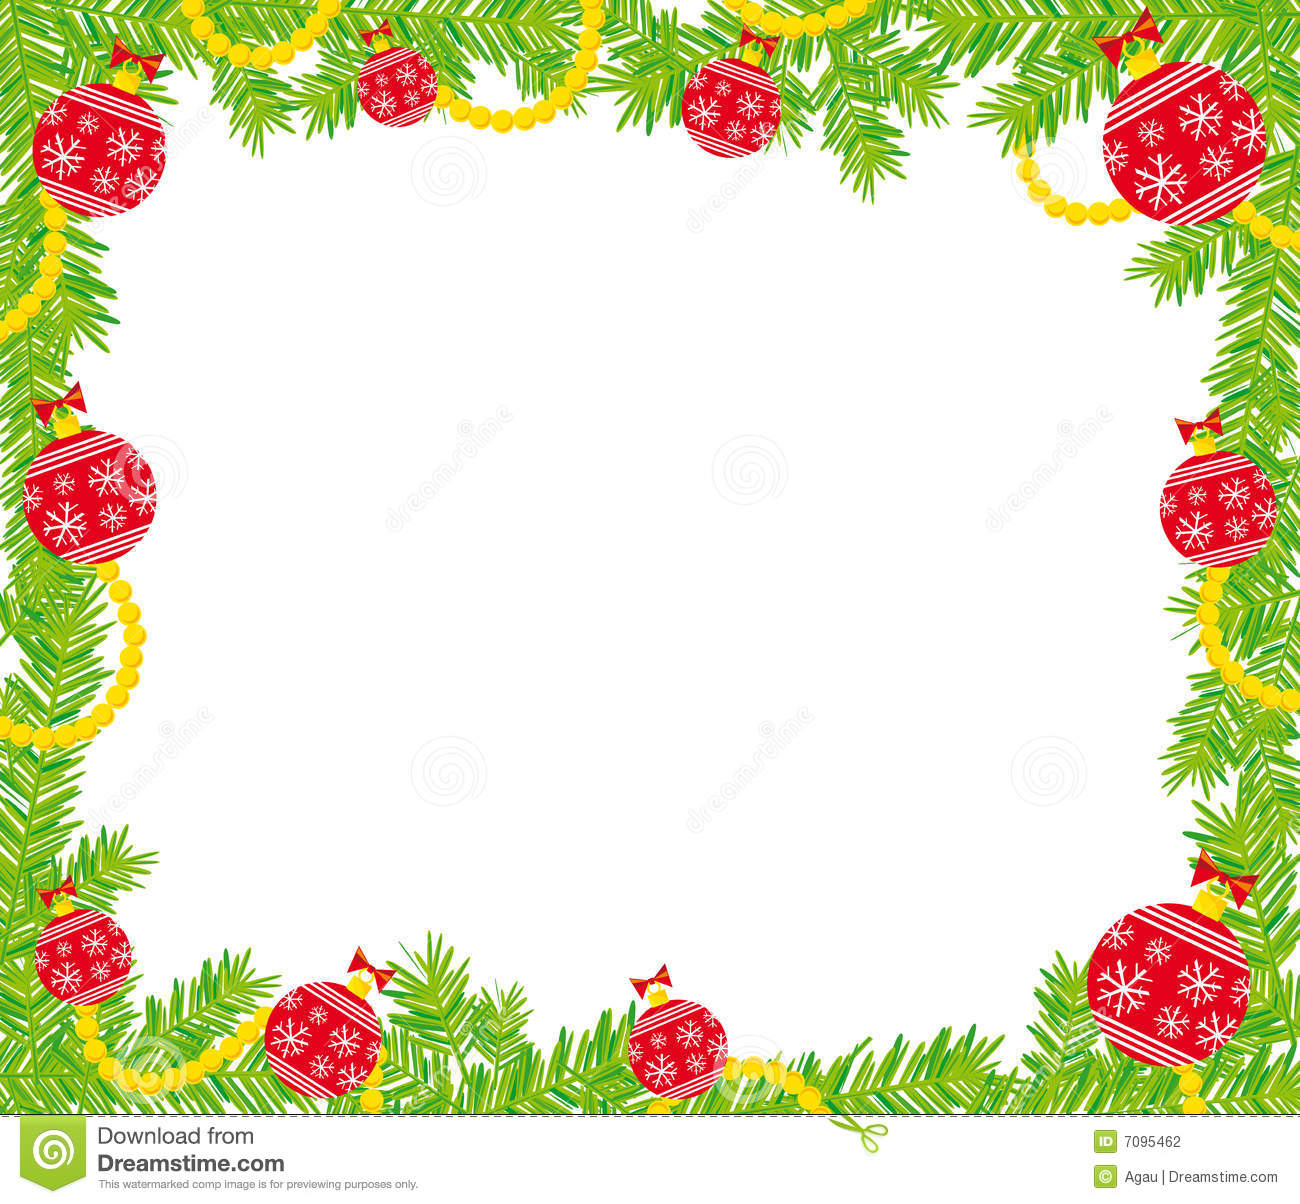 related keywords suggestions for christmas frame